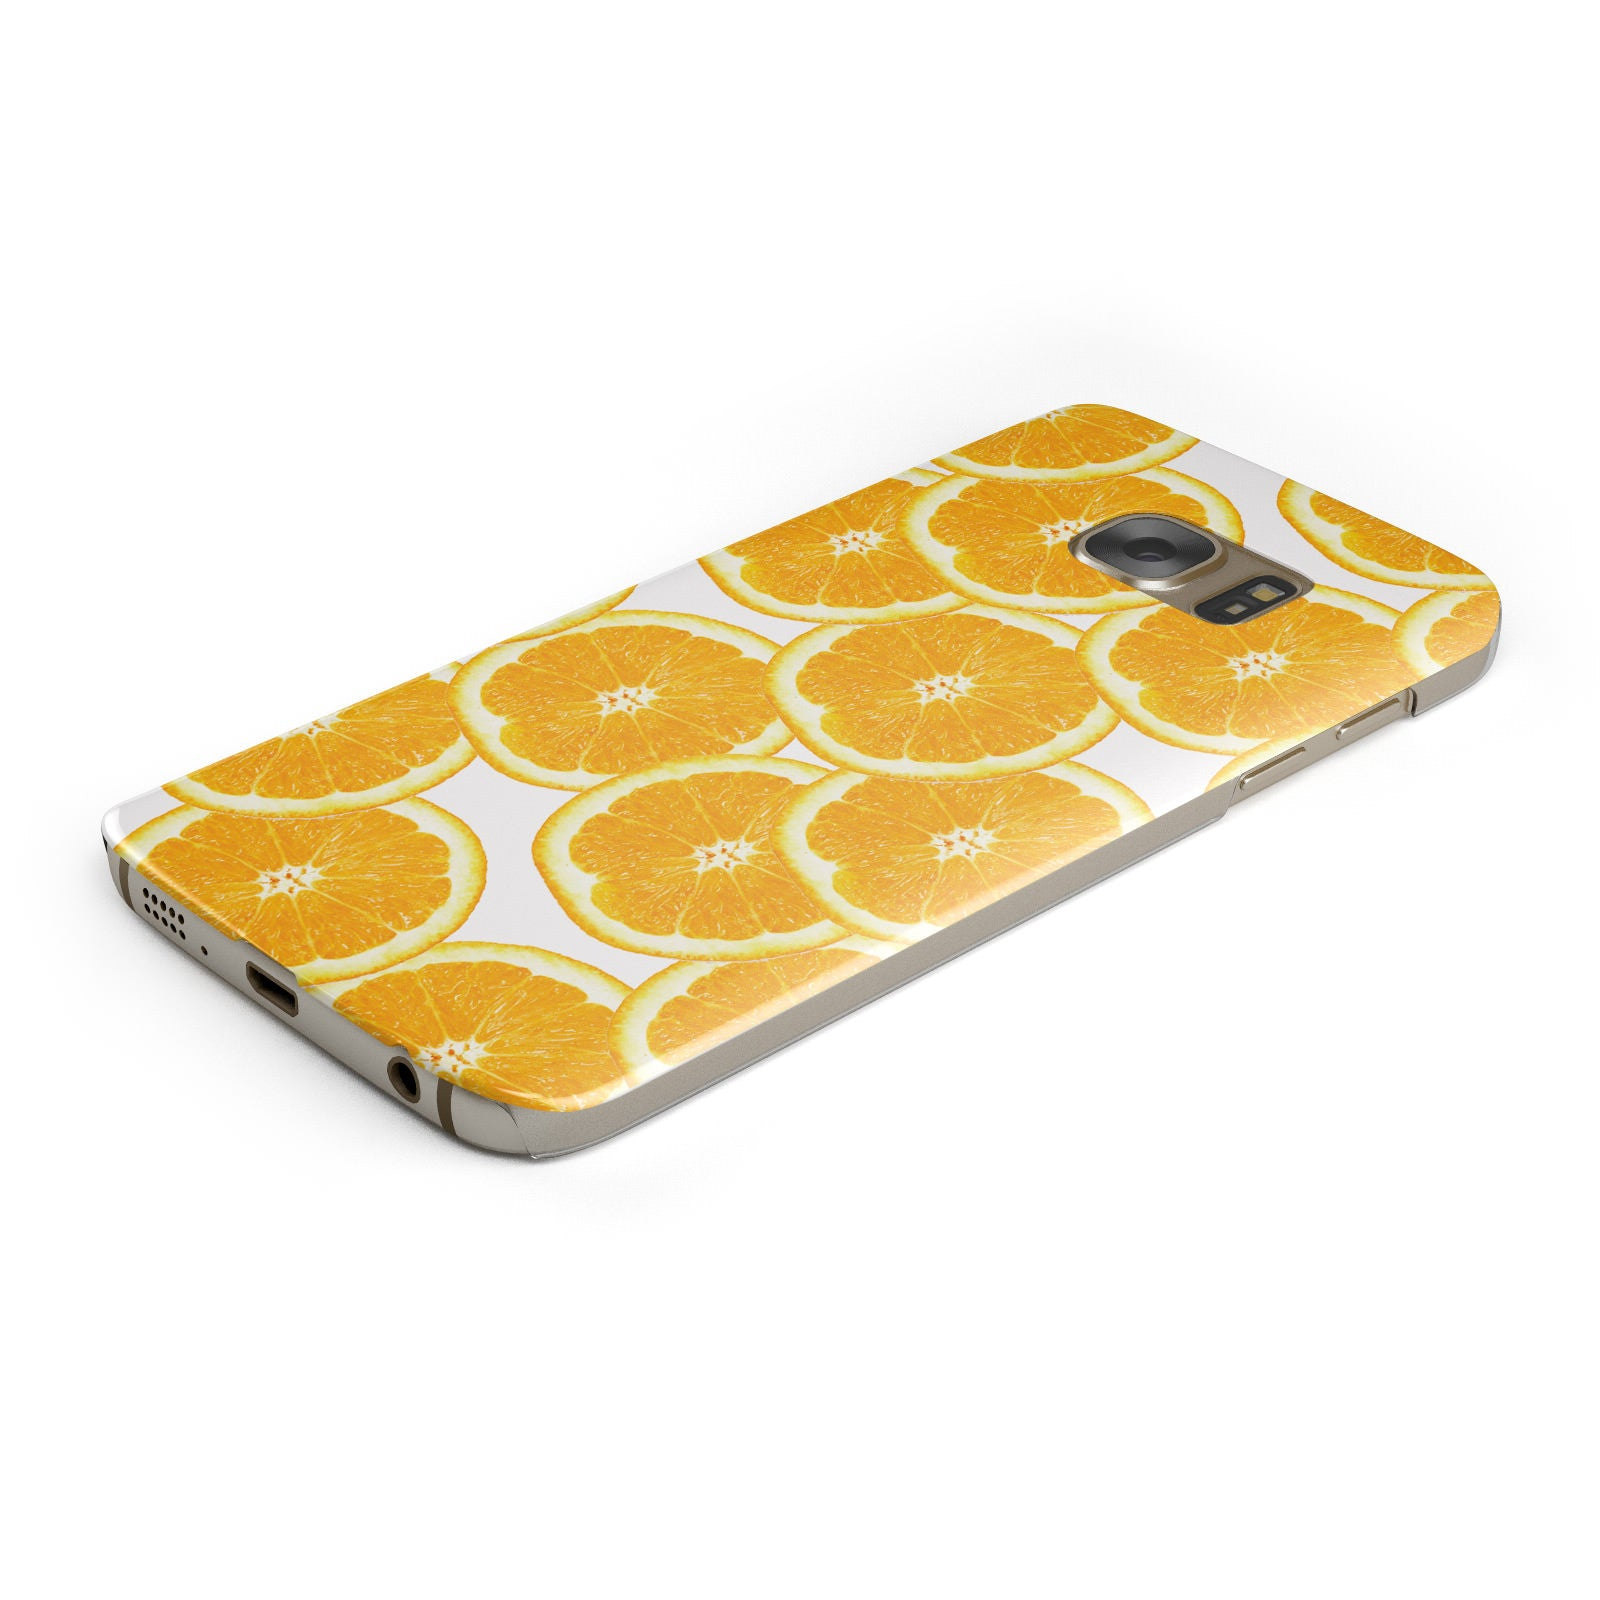 Orange Fruit Slices Samsung Galaxy Case Bottom Cutout